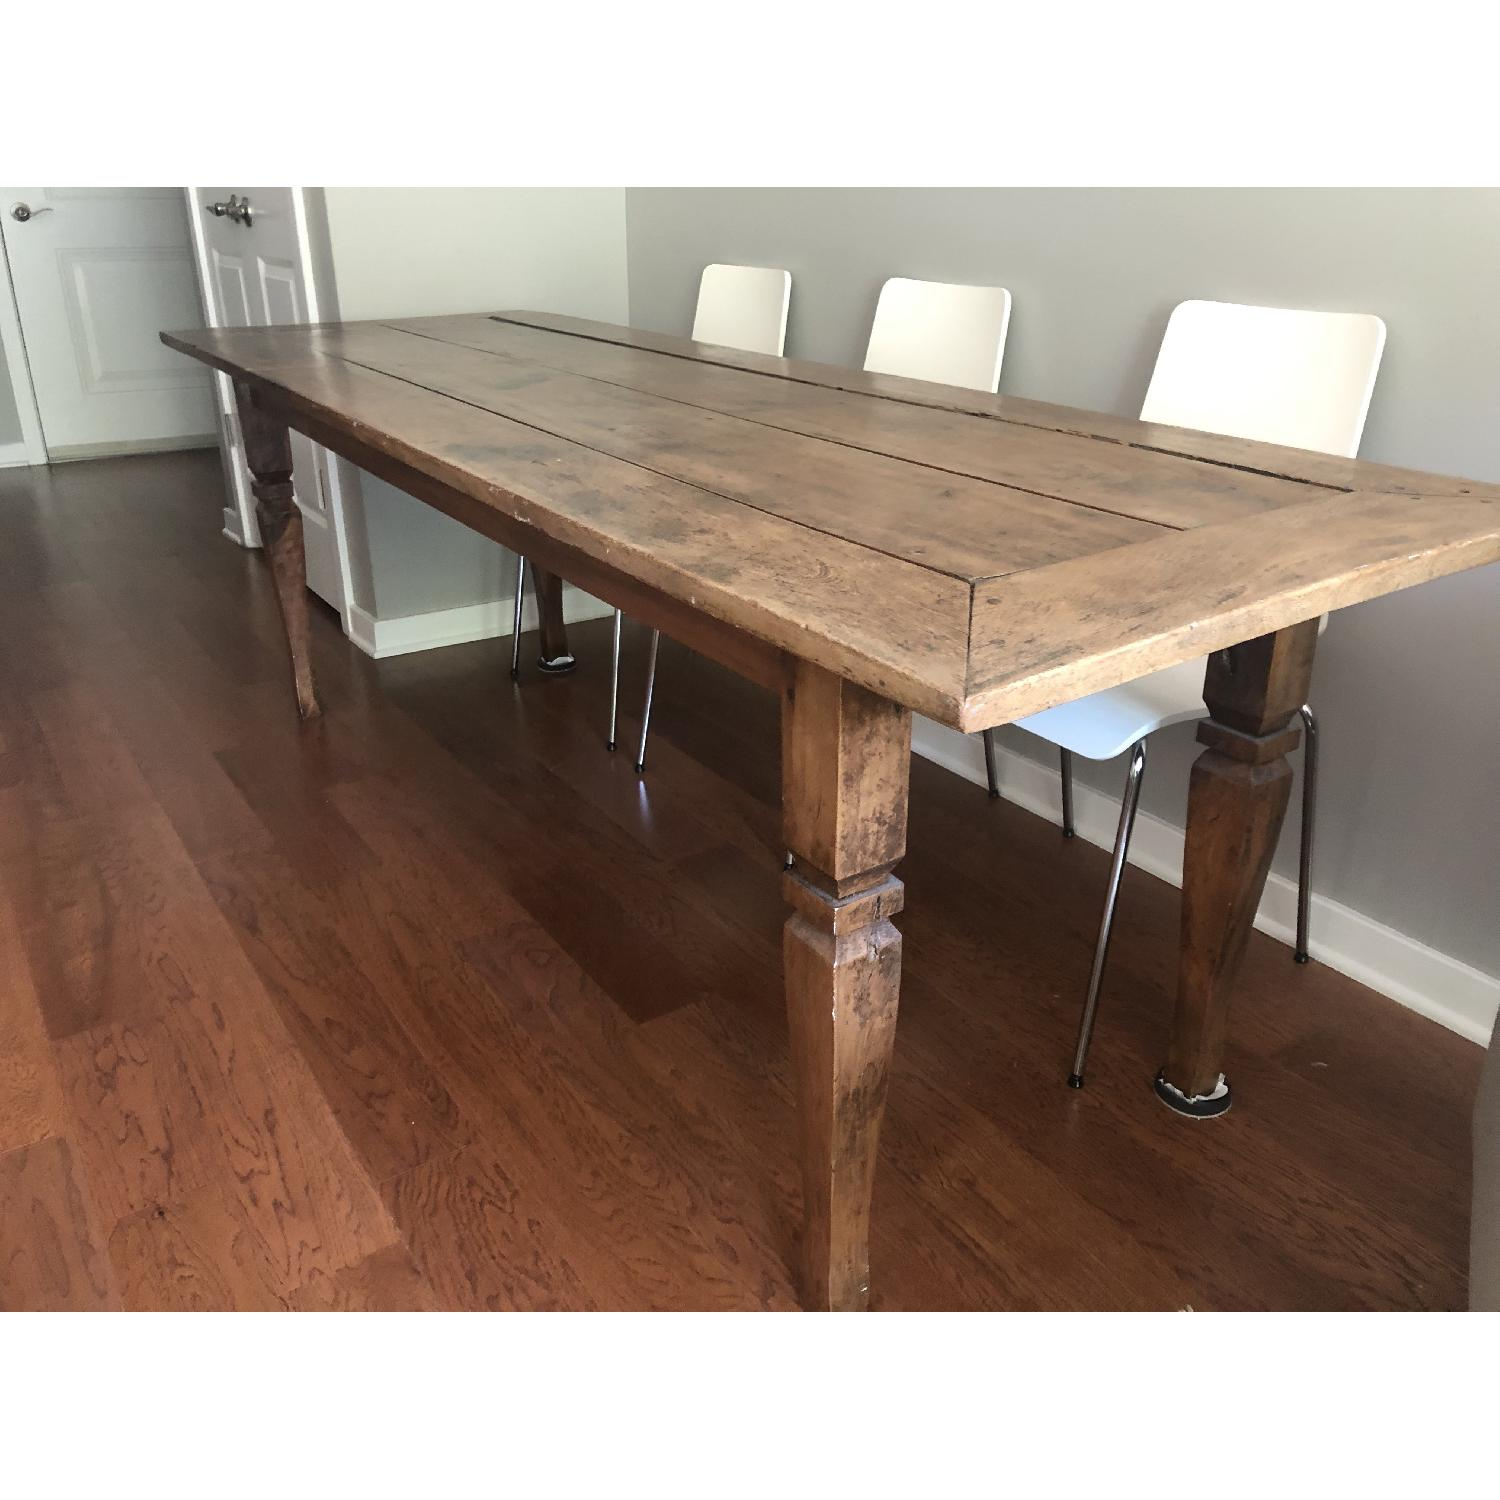 Reclaimed Wood Dining Table-2